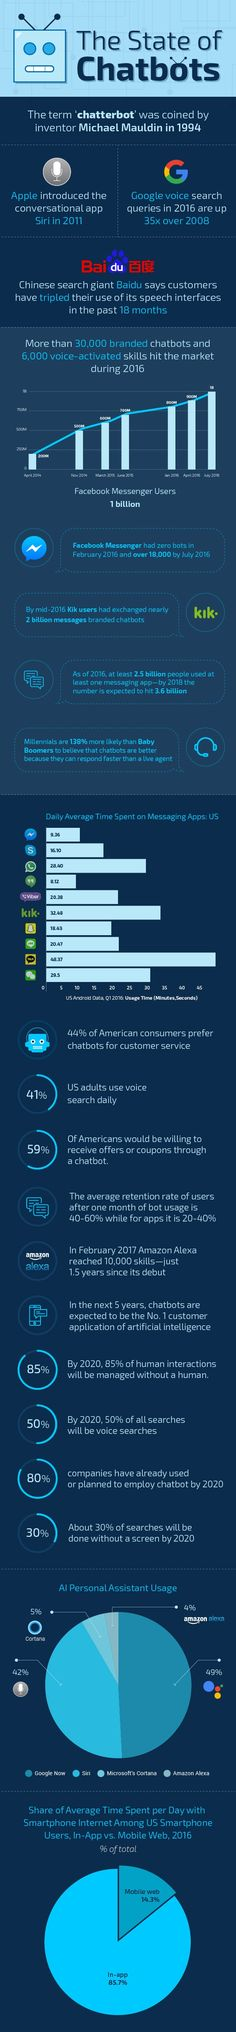 chatbot-infographic-photon.jpg